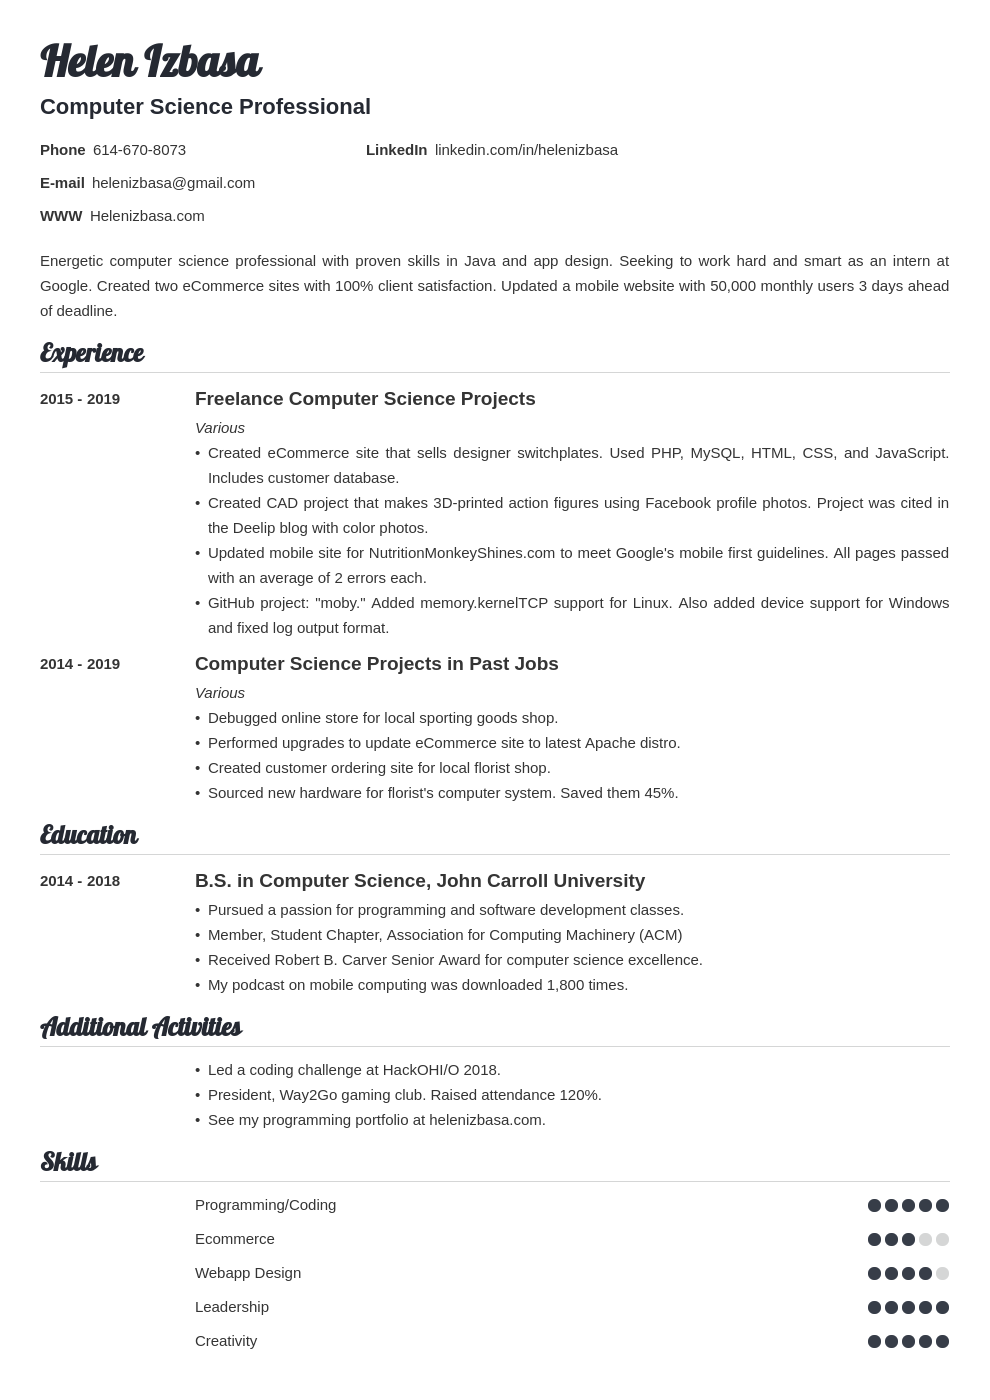 internship template valera